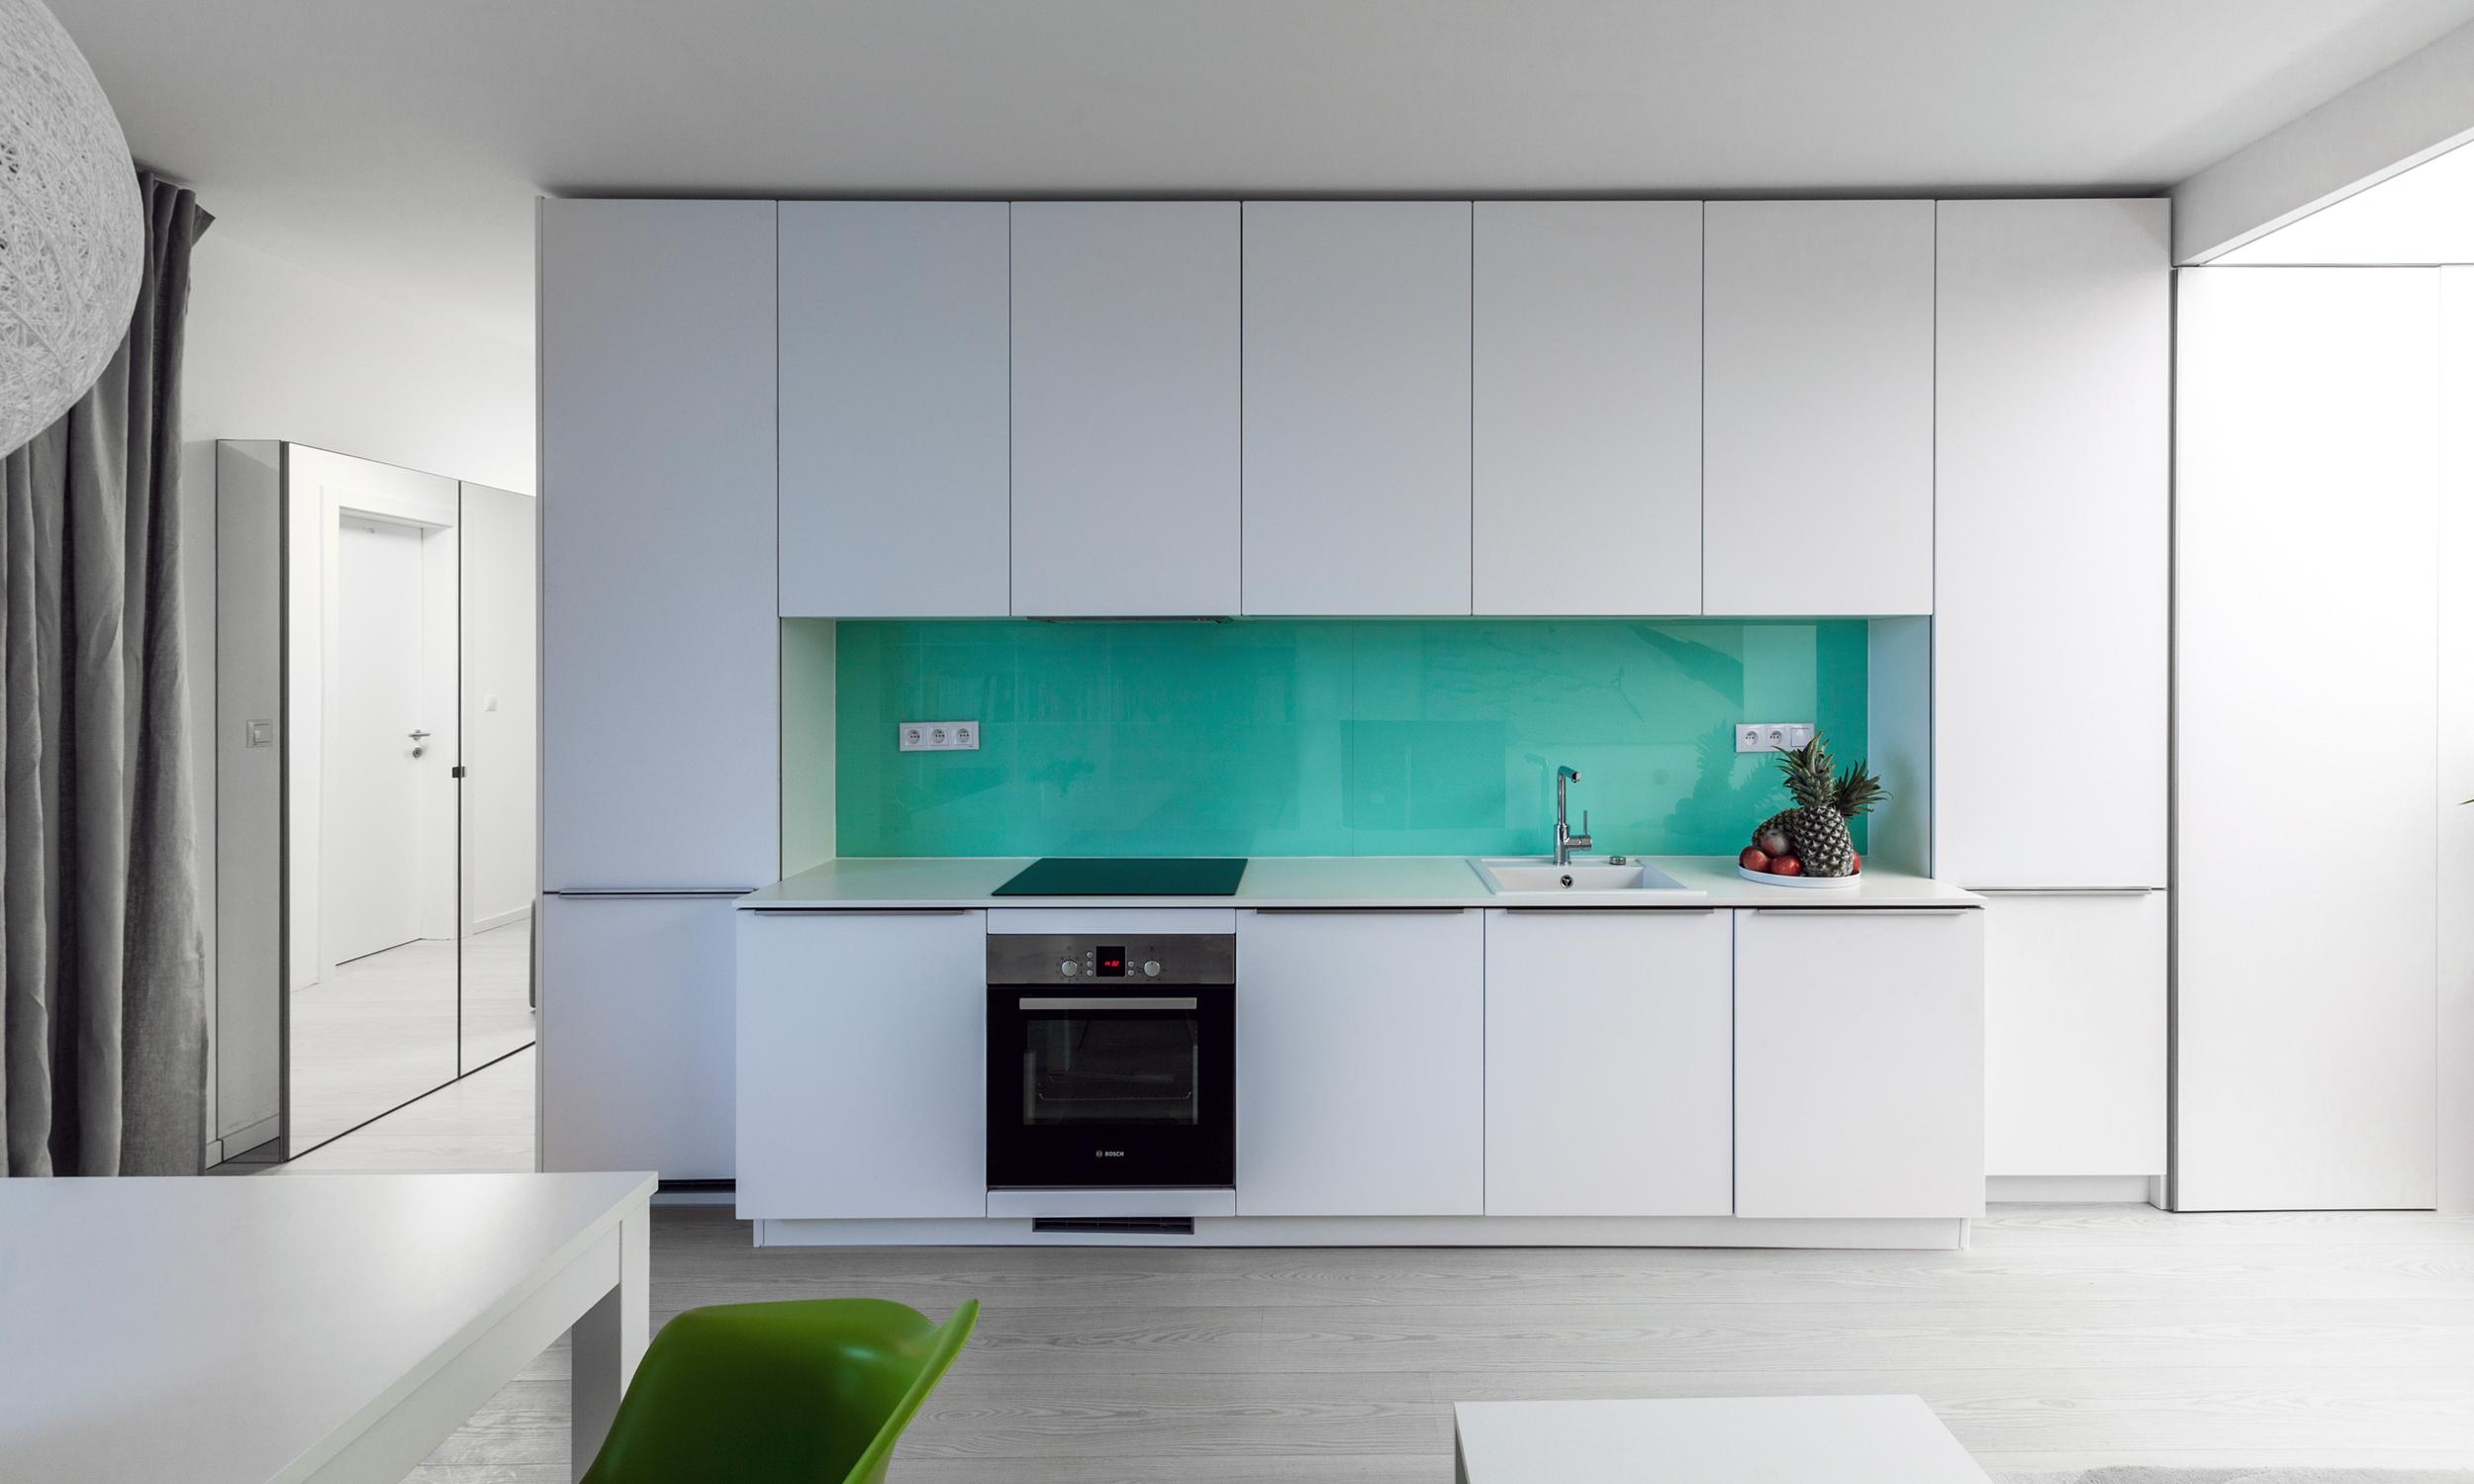 Kitchens | RULES architects